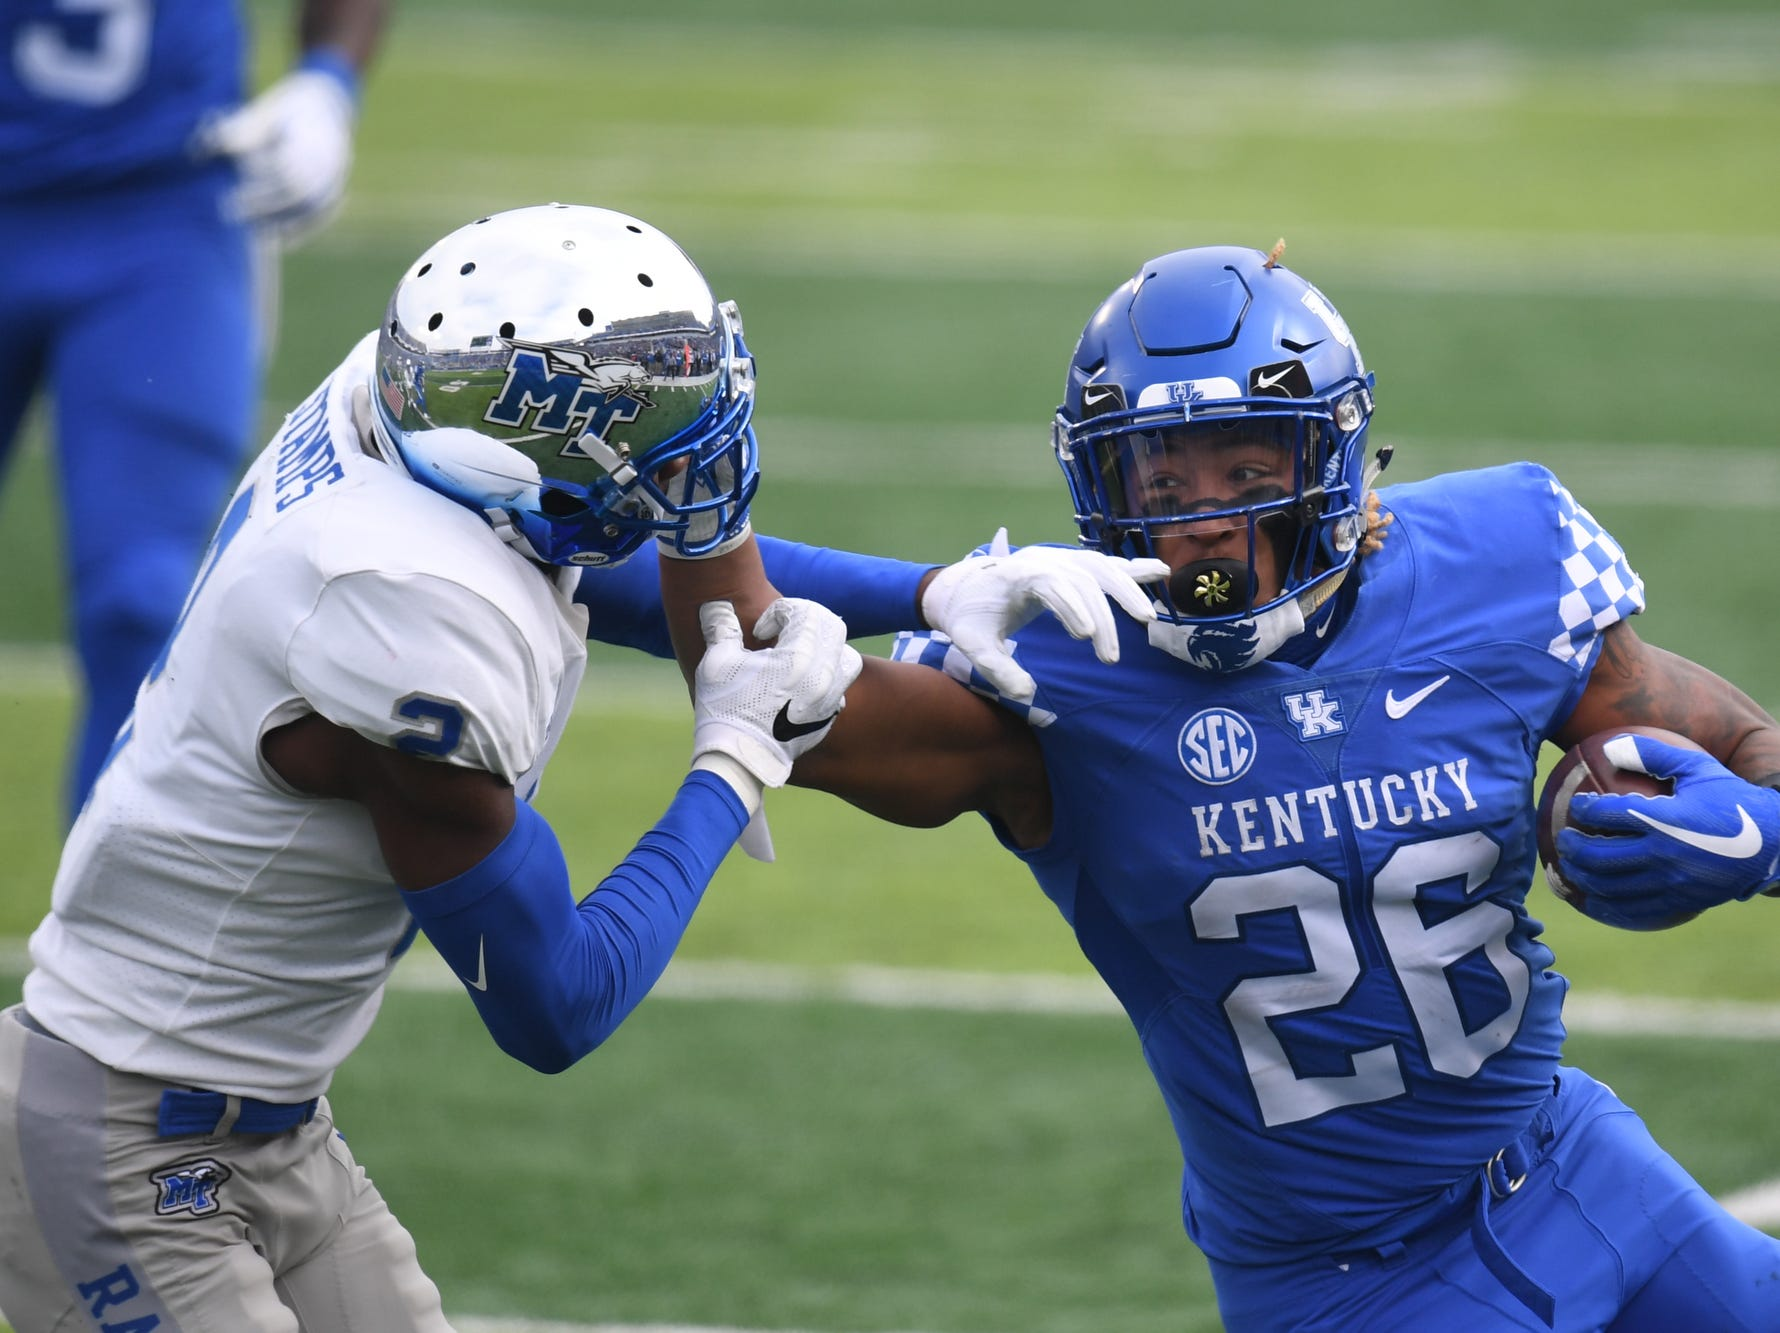 UK RB Benny Snell Jr. runs the ball during the University of Kentucky football game against Middle Tennessee at Kroger Field in Lexington, Kentucky on Saturday, November 17, 2018.